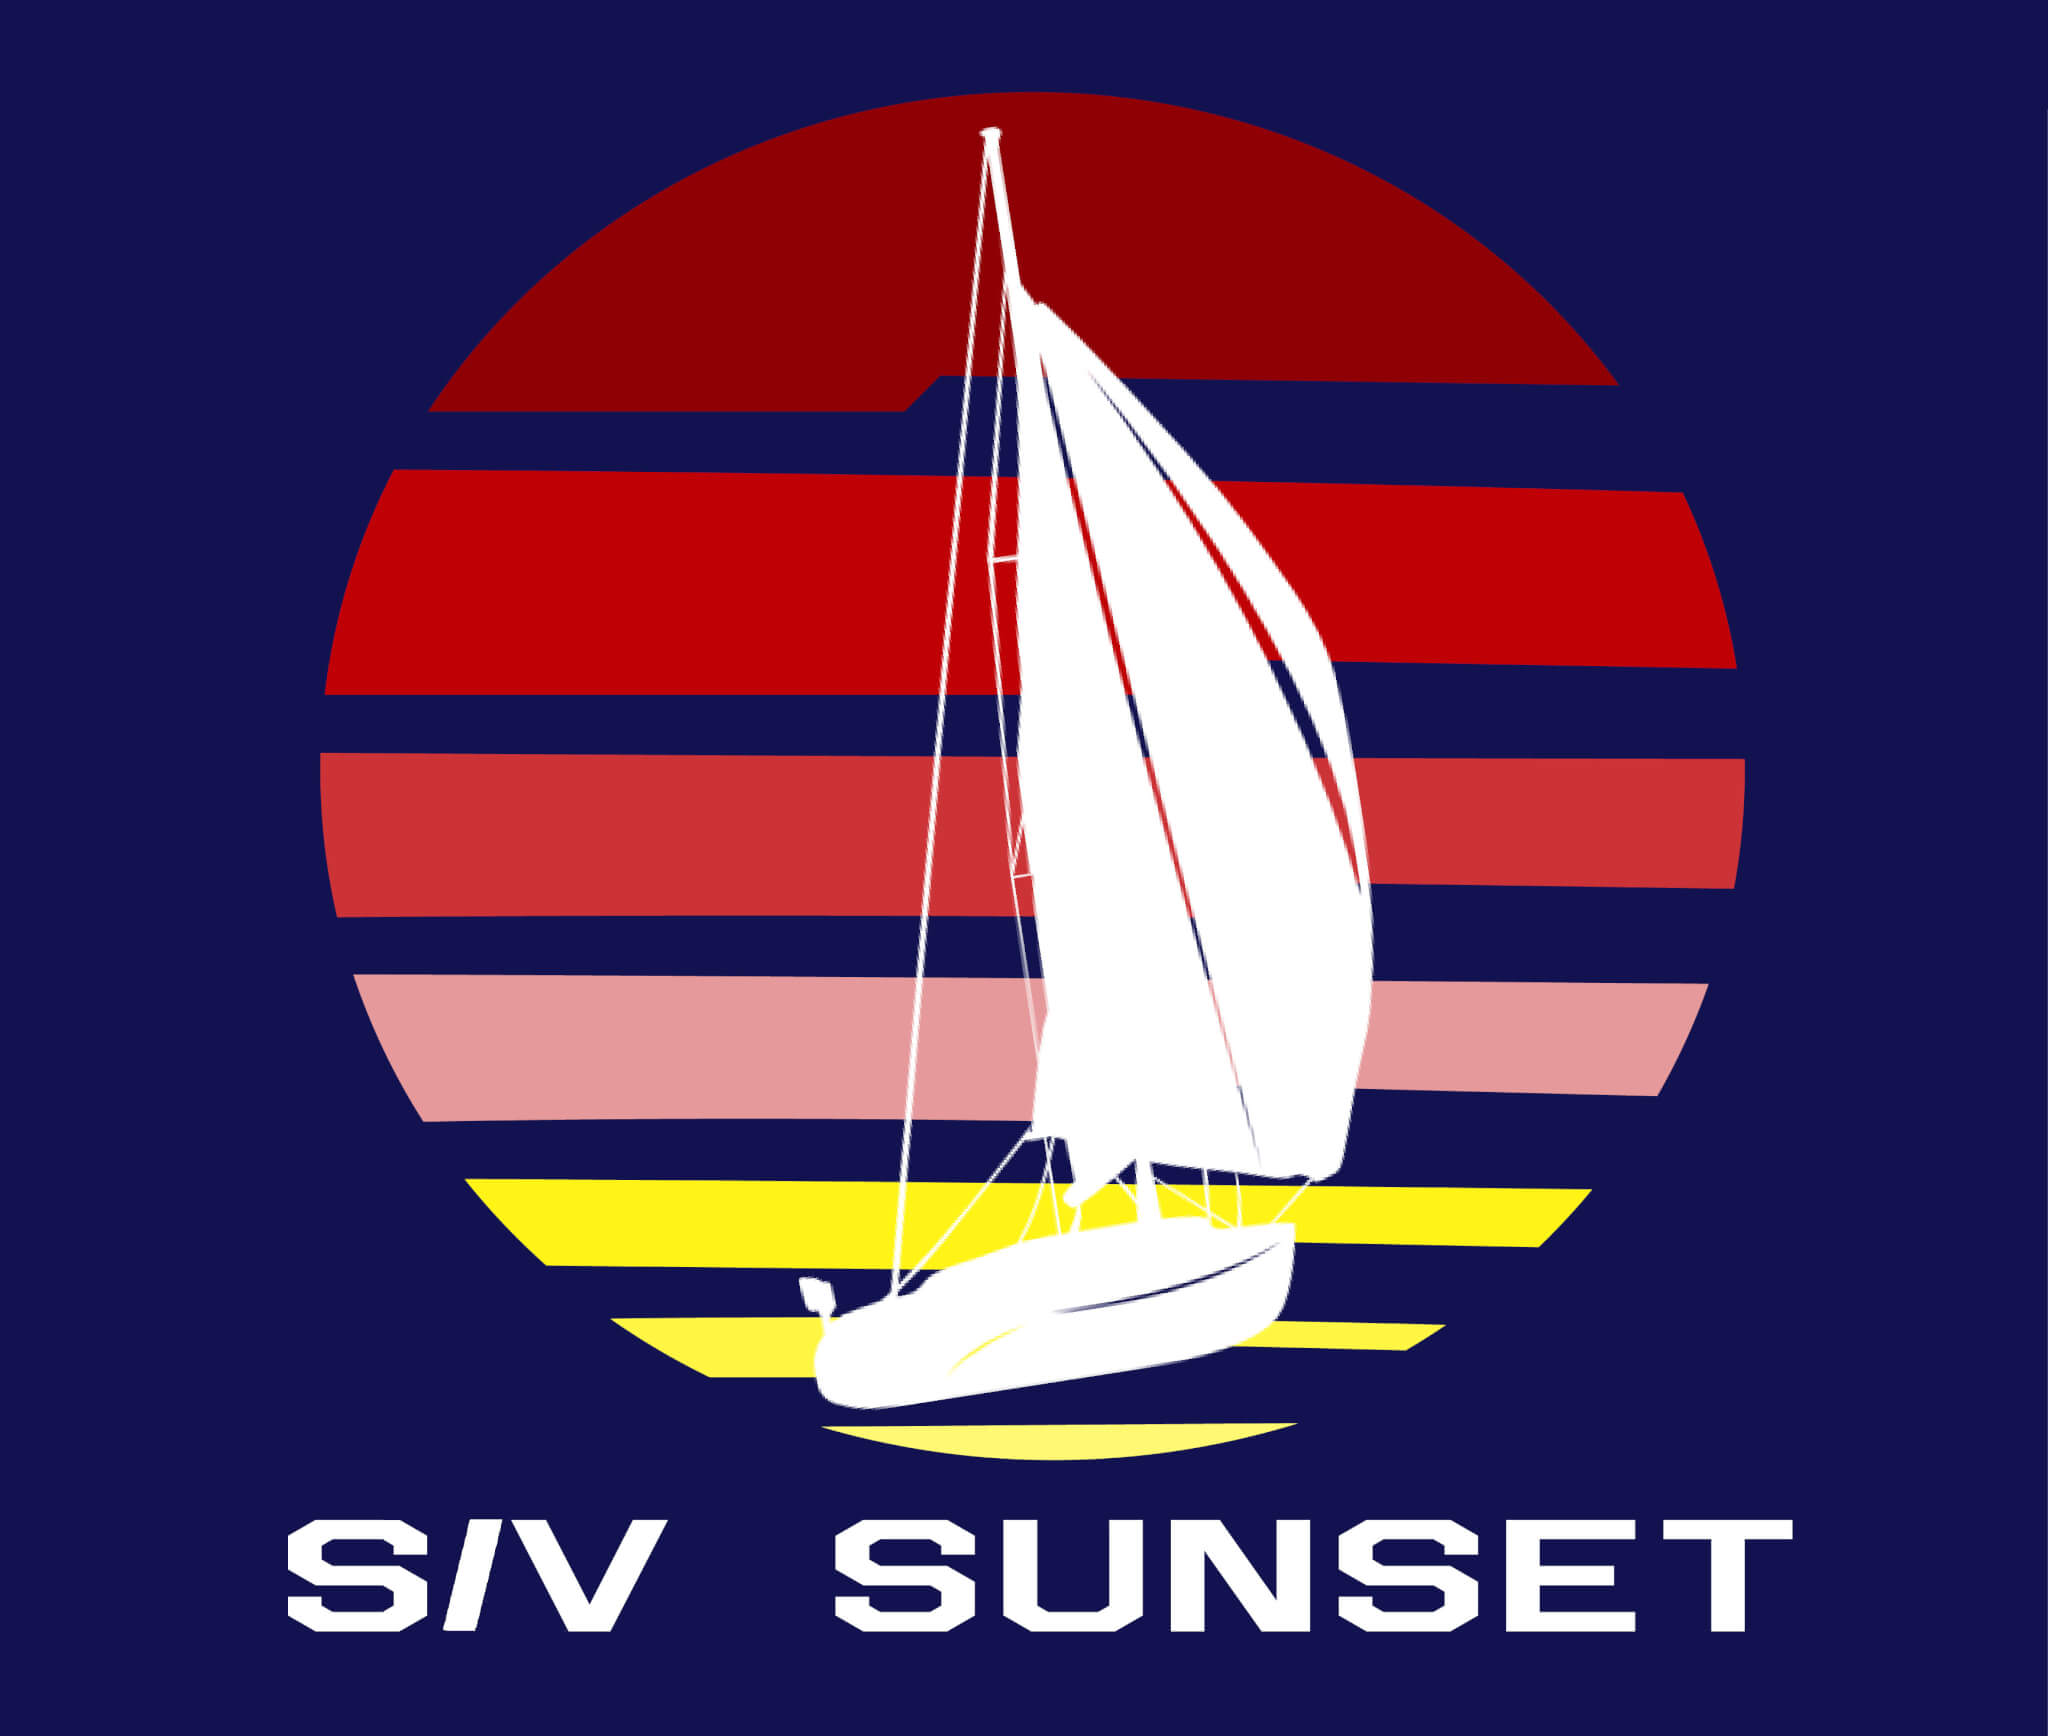 SV SUNSET LOGO update